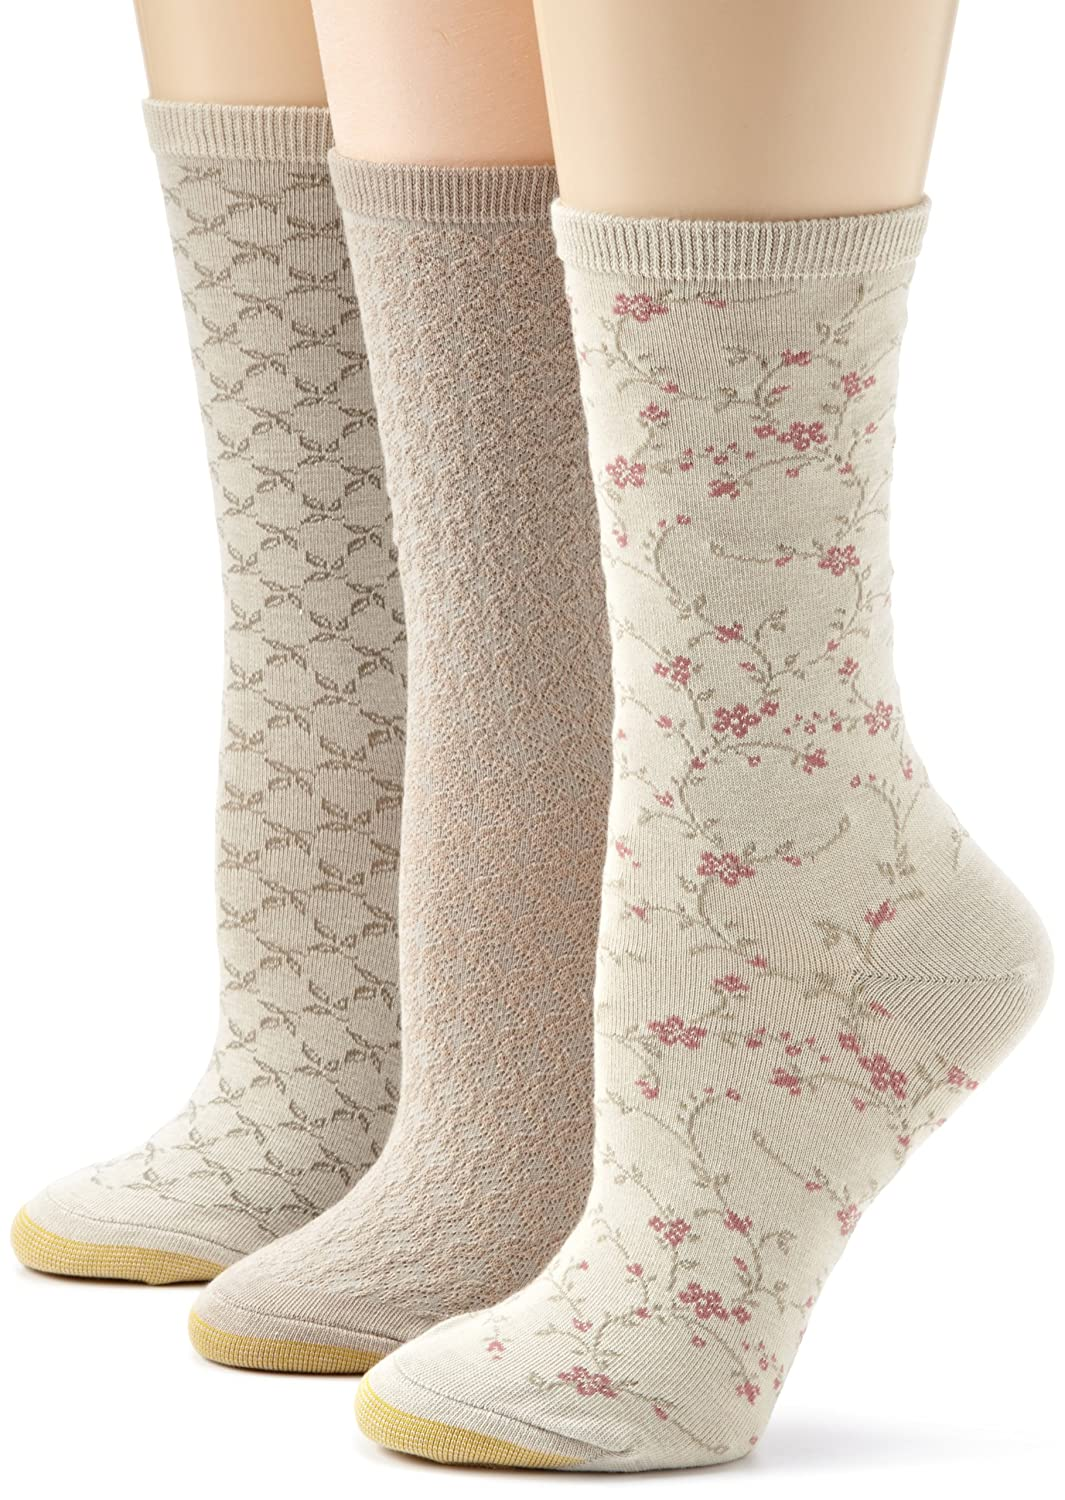 Gold Toe Woman's 3-Pack Floral Diamonds And Leaf Patterned Socks Gold Toe Moretz - Women's 5252